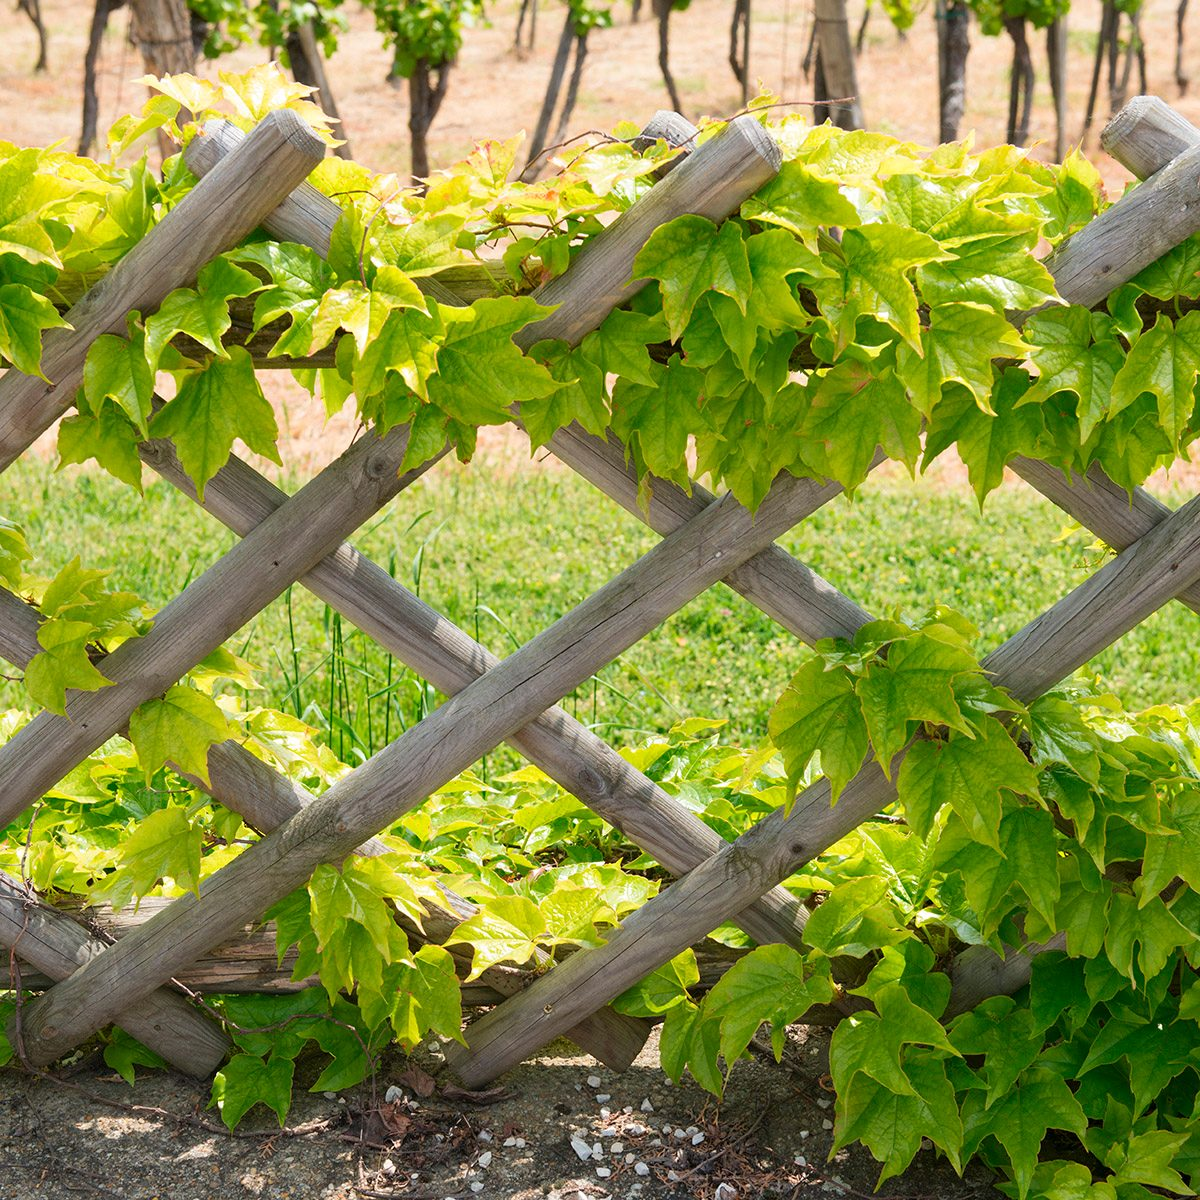 pergola fence in the vineyard in a small European city